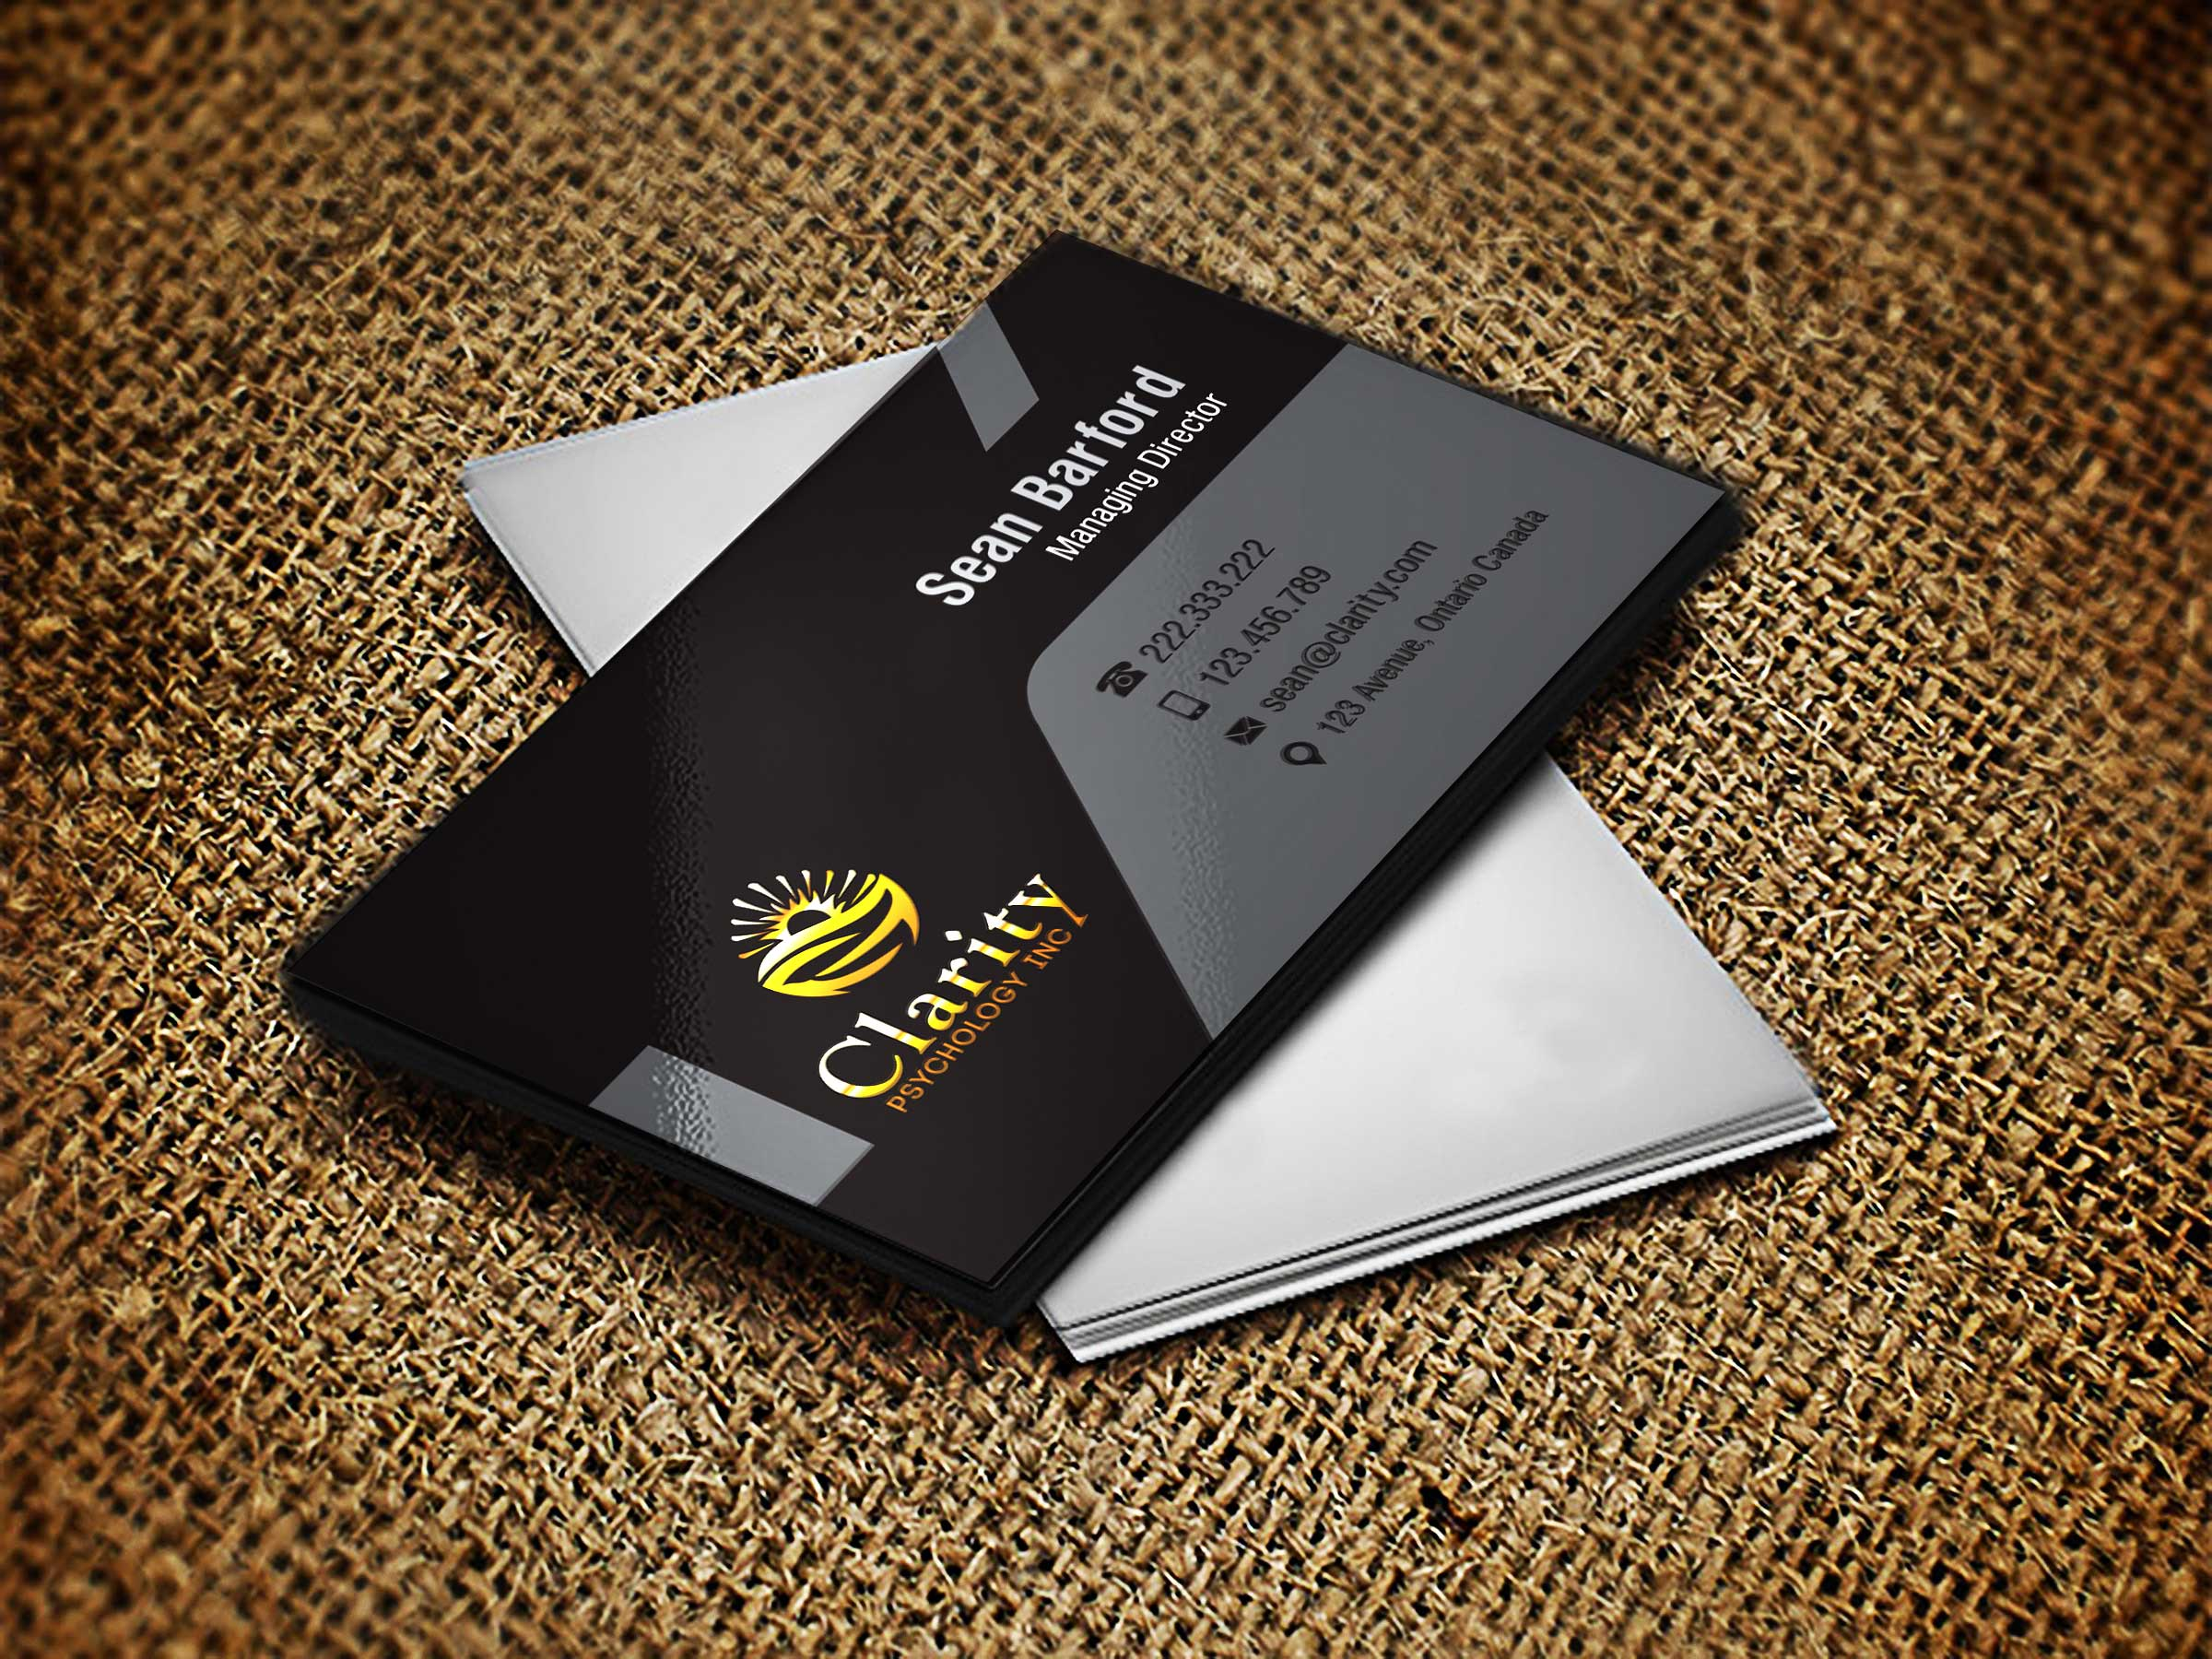 Business card design contests professional business card design business card design by lagalag entry no 6 in the business card design contest colourmoves Image collections